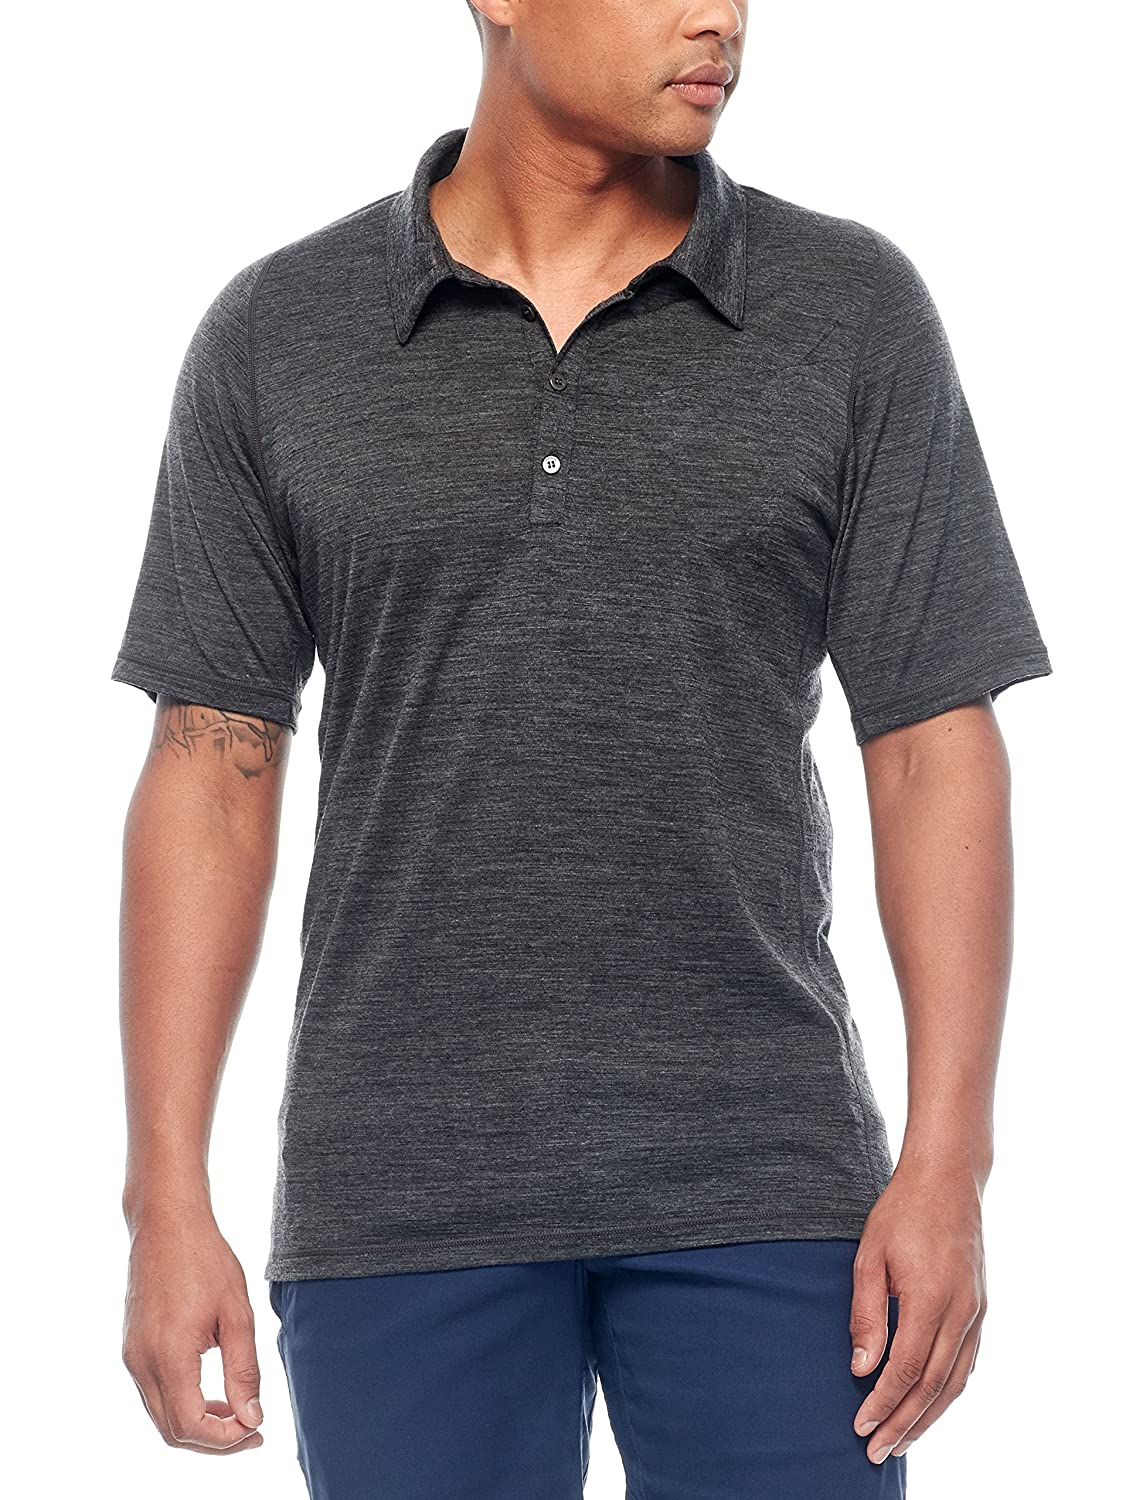 Icebreaker Merino Mens Cinco Short Sleeve Polo Shirt Merino Wool